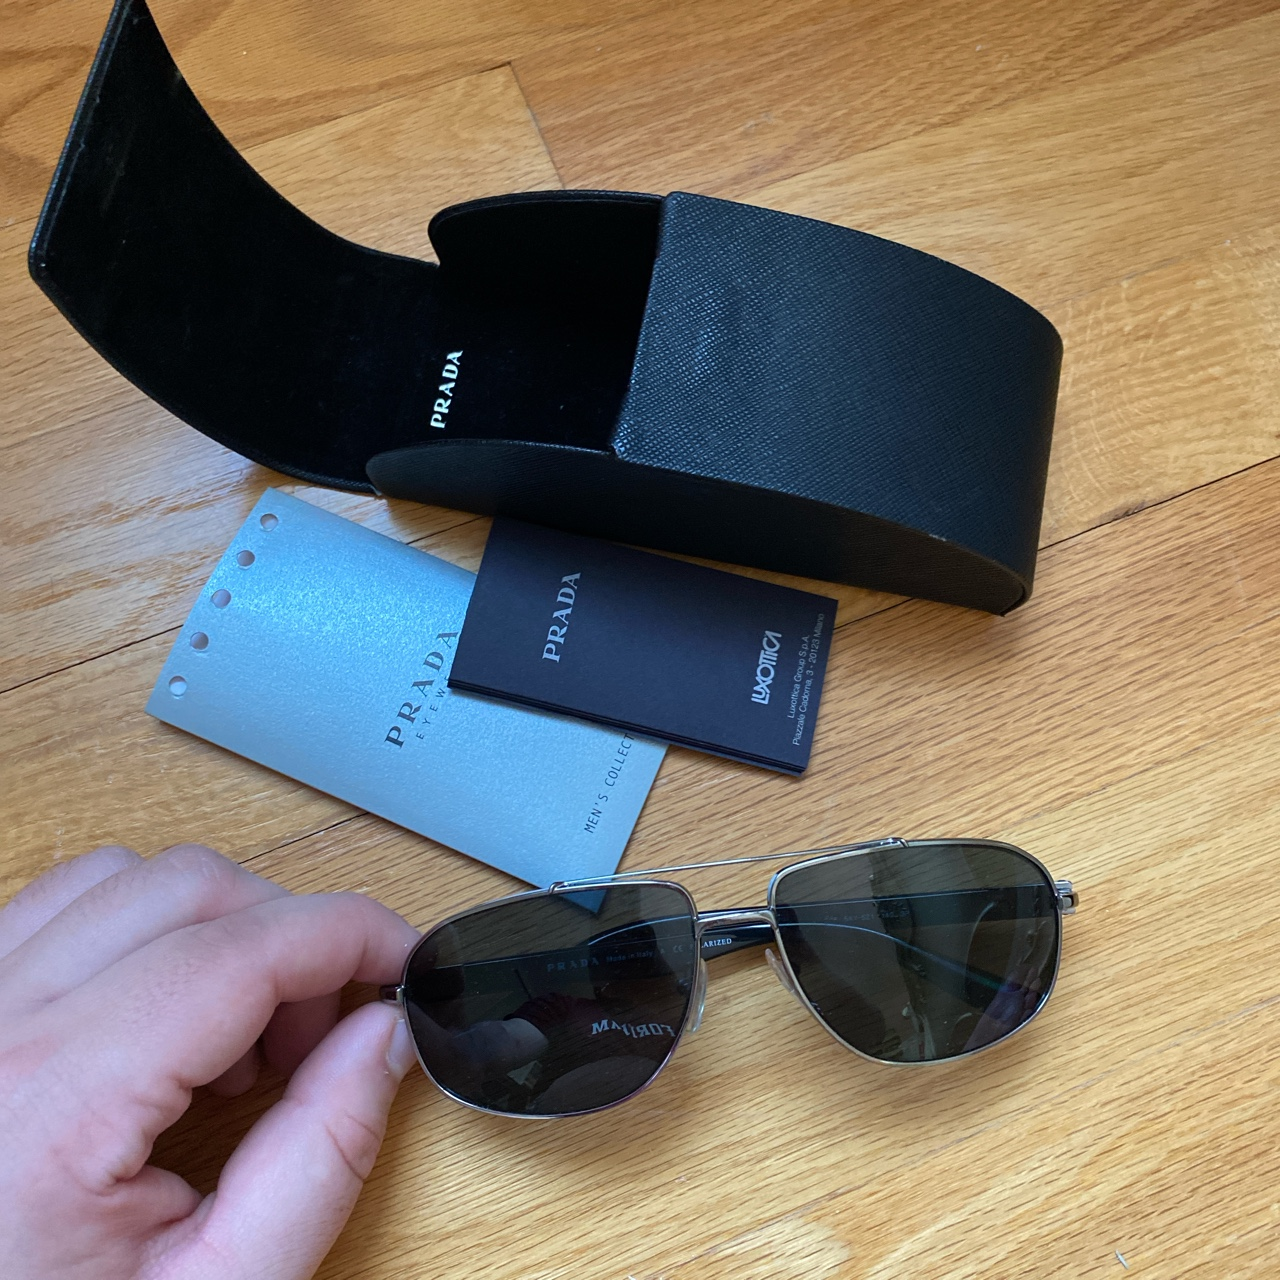 Product Image 1 - PRADA SUNGLASSES! Authentic and comes